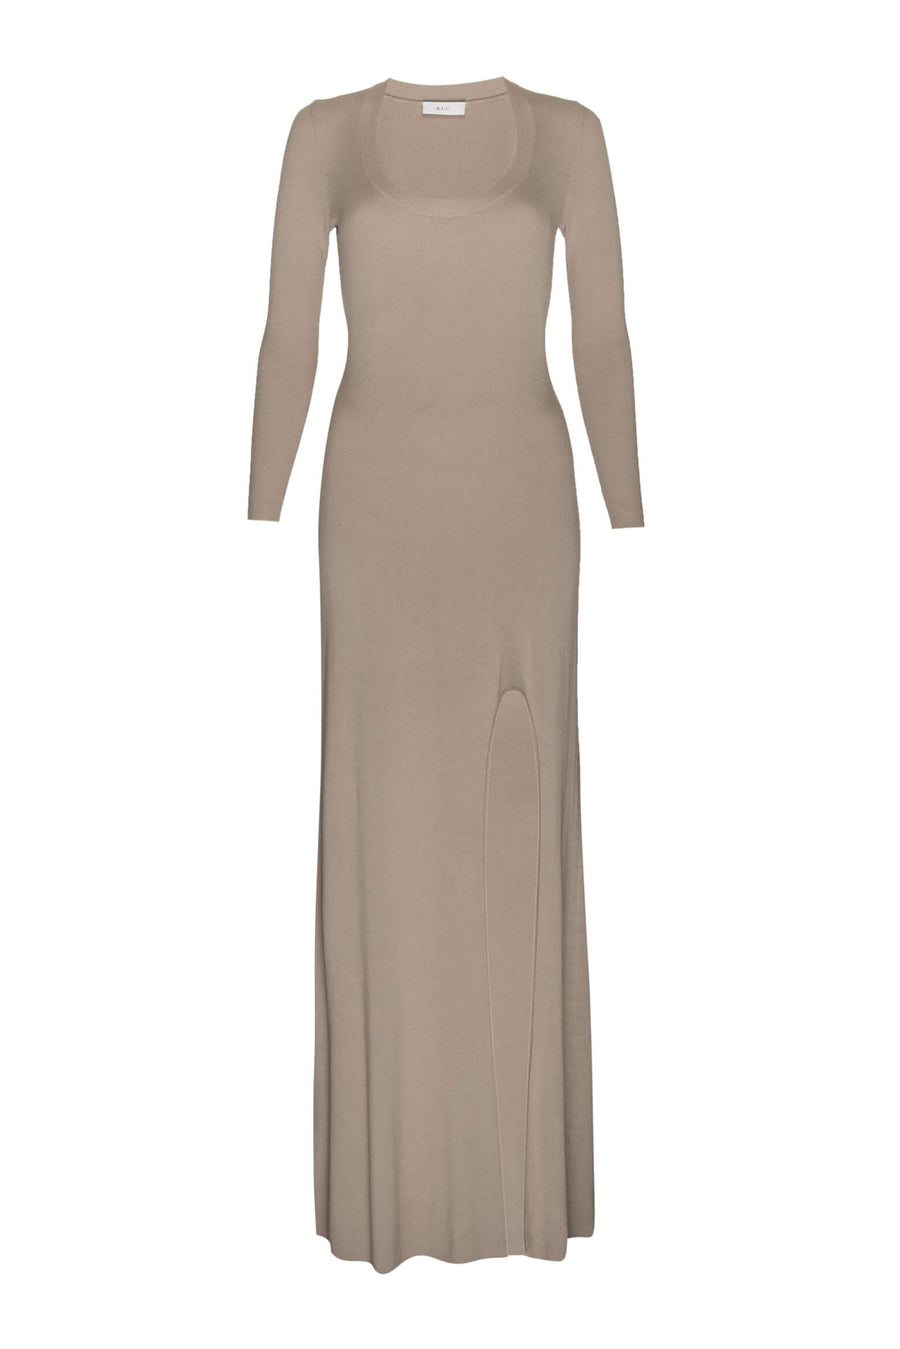 A.L.C Akita Dress available at The New Trend